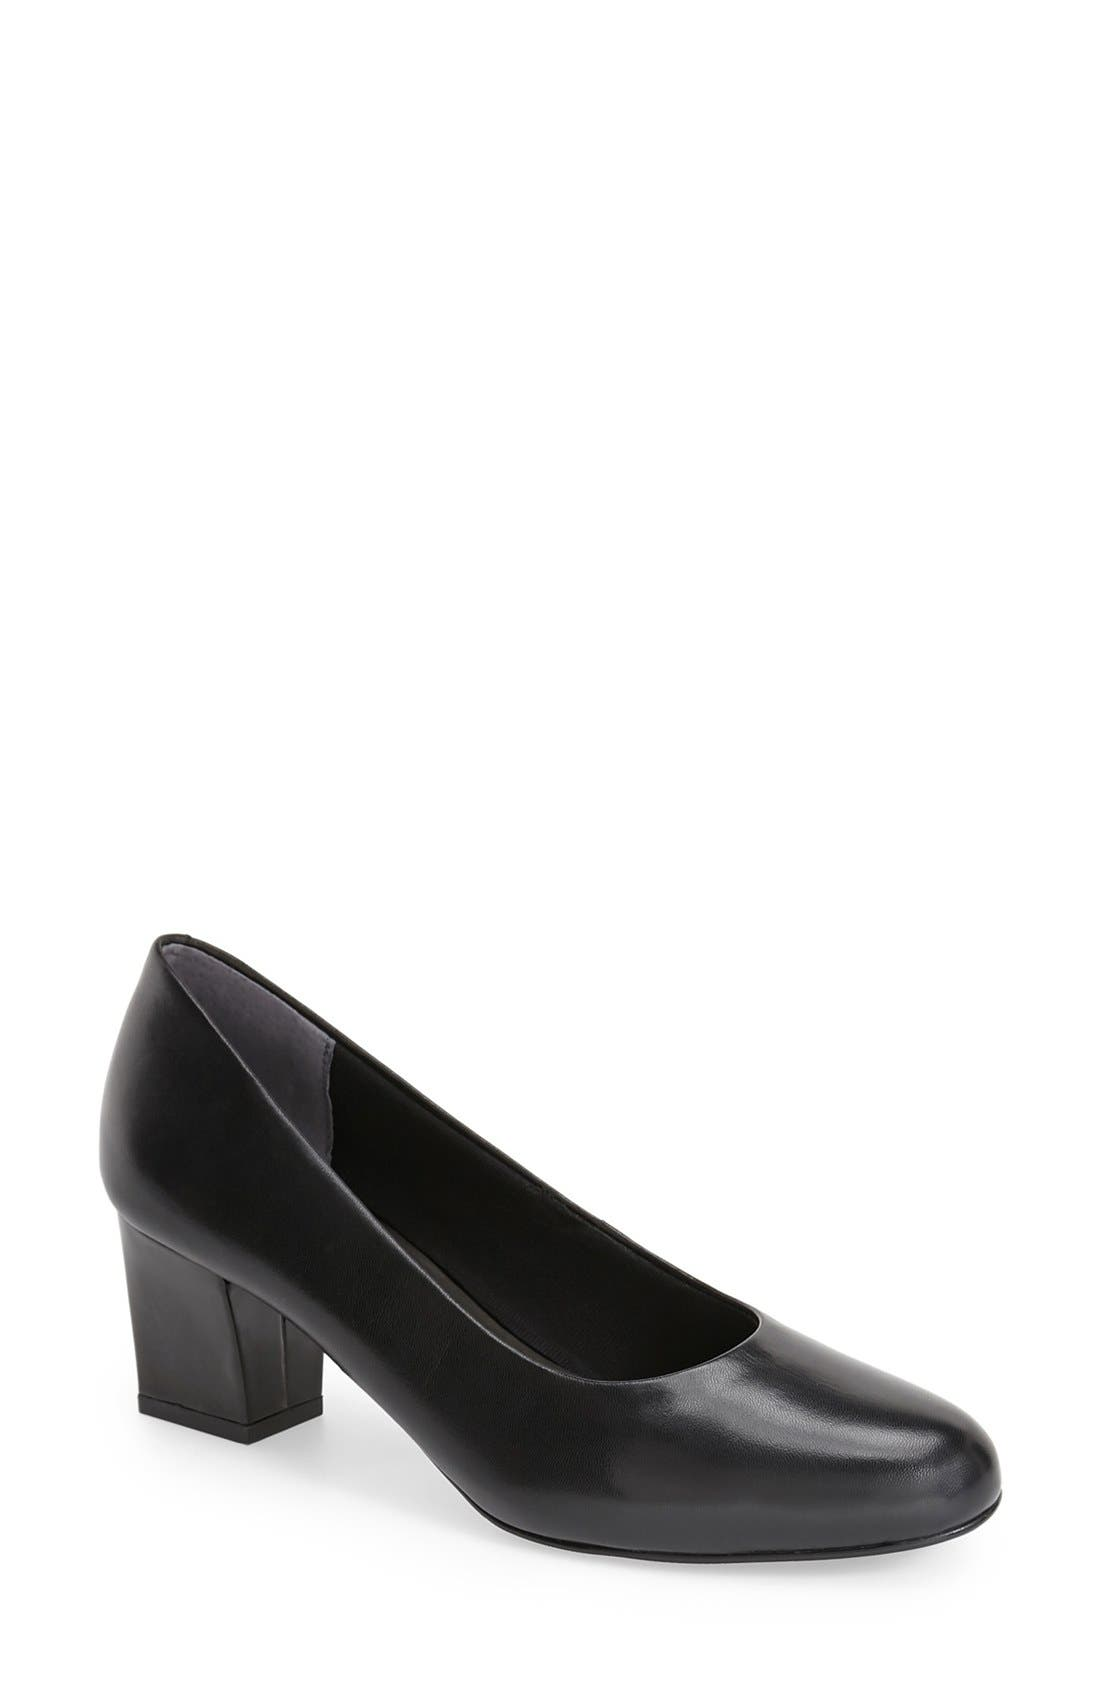 'Candela' Pump,                         Main,                         color, Black Leather